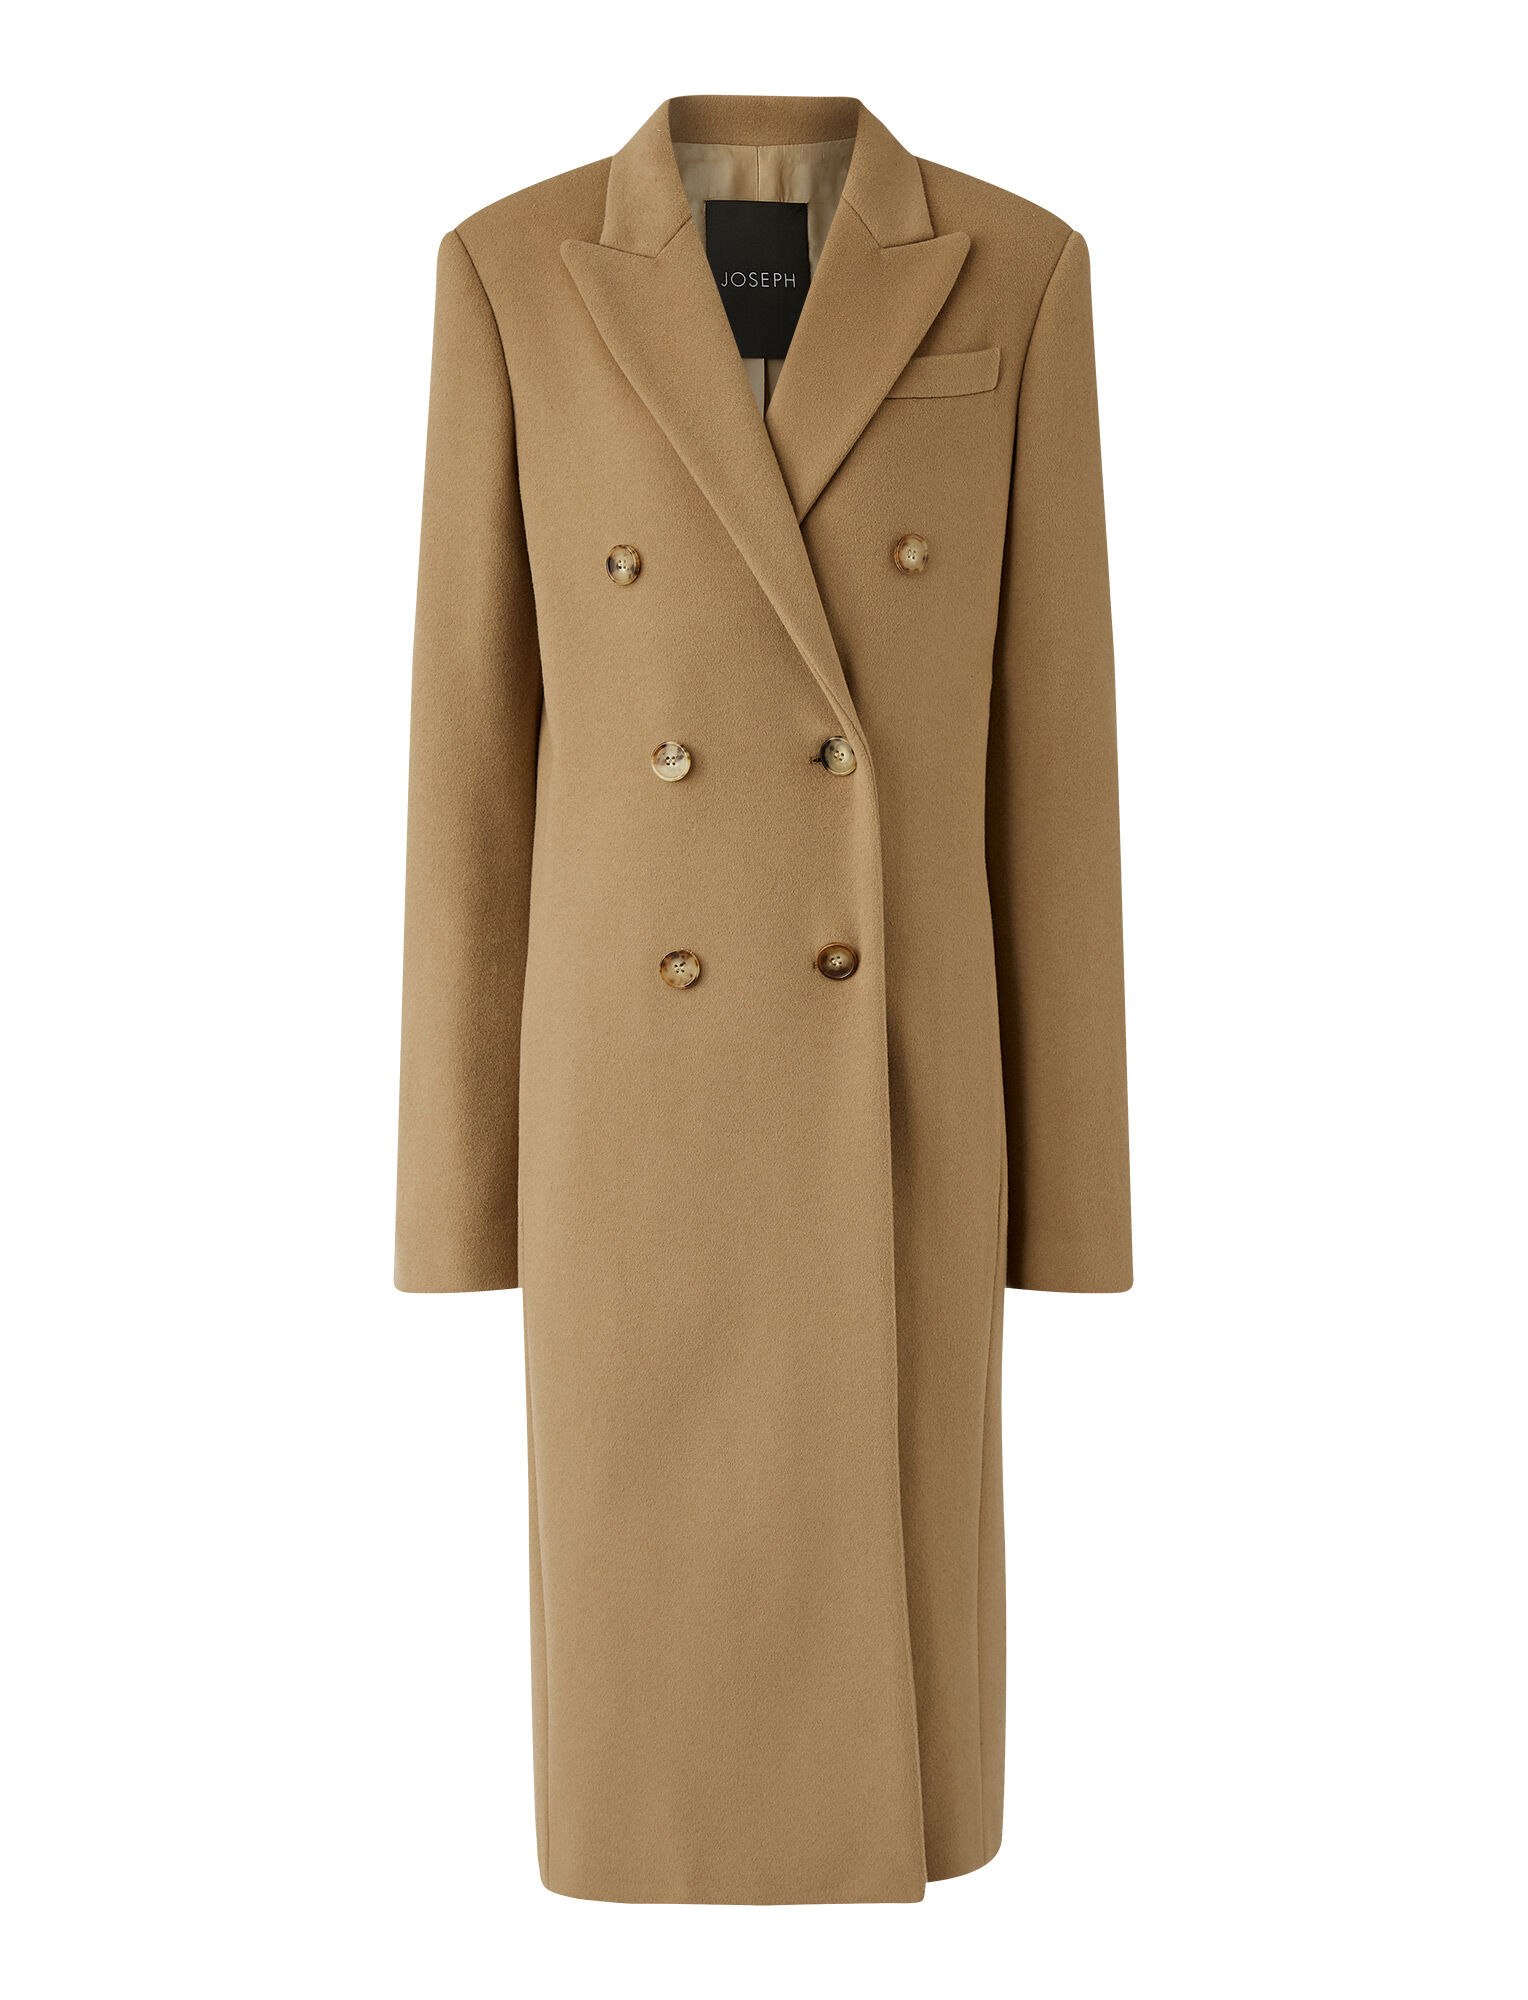 Joseph, Cam Wool Coating Coat, in Saddle